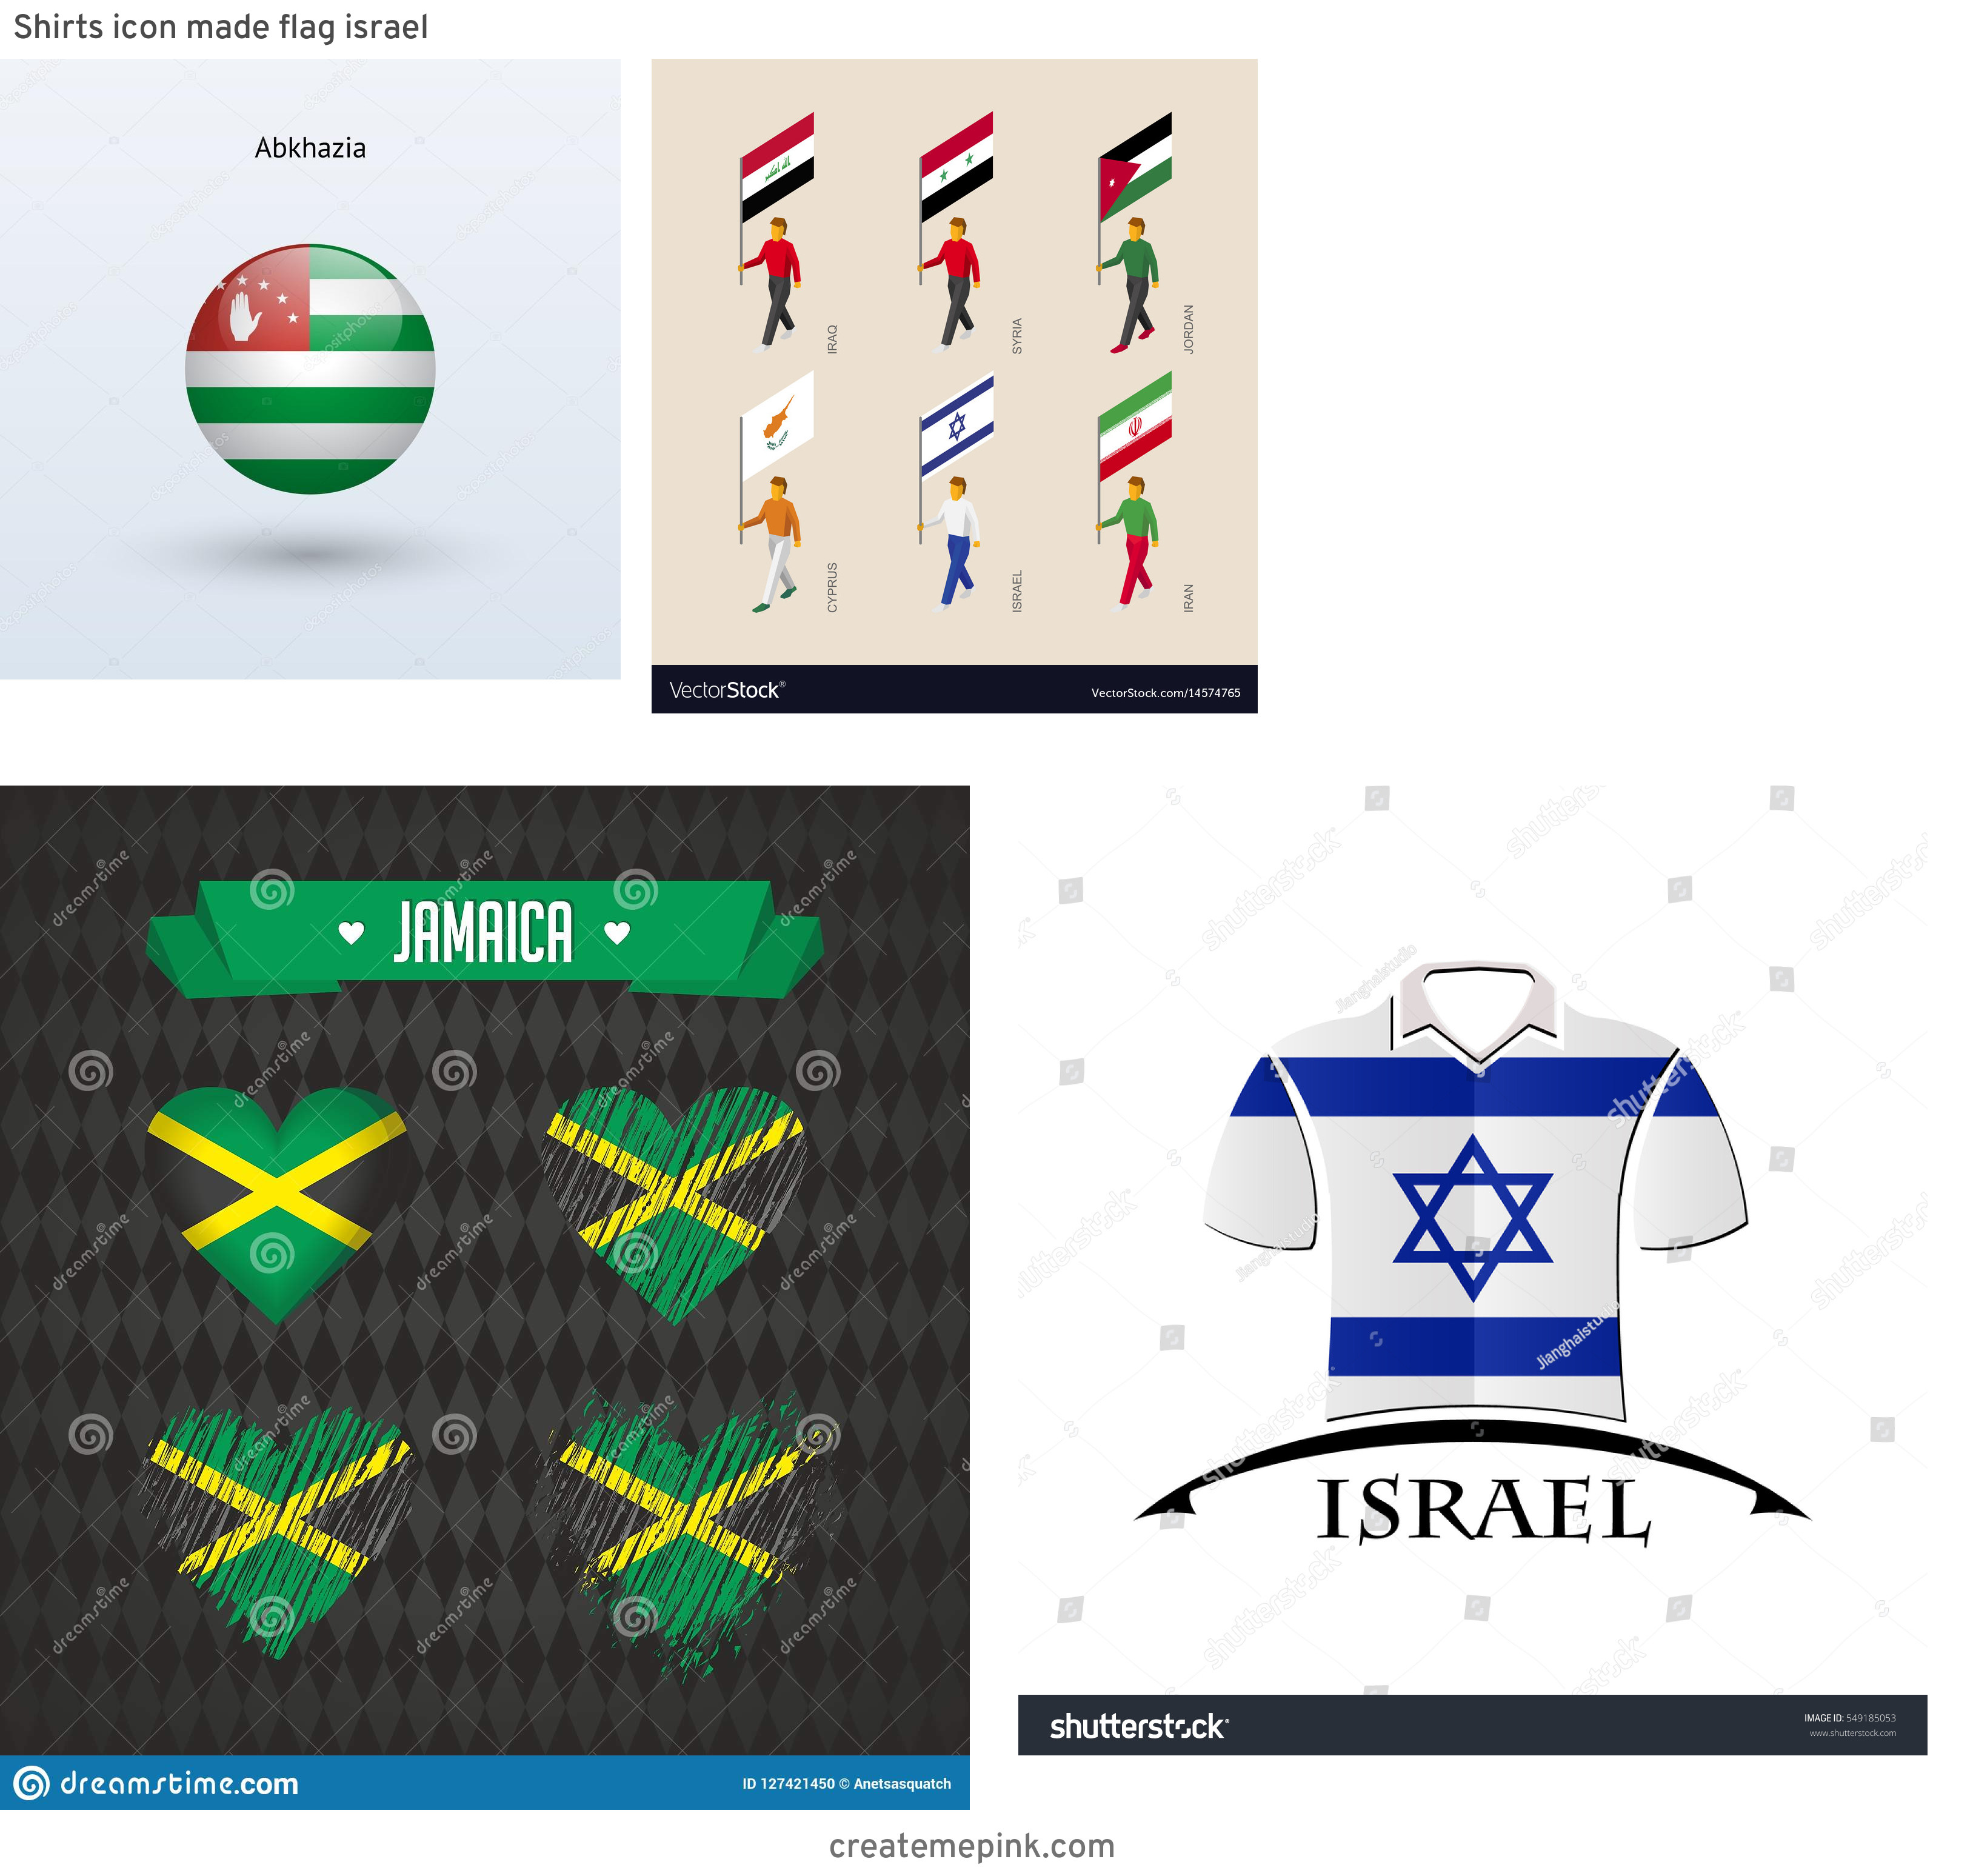 Israel And New Jersey Flag Vector: Shirts Icon Made Flag Israel